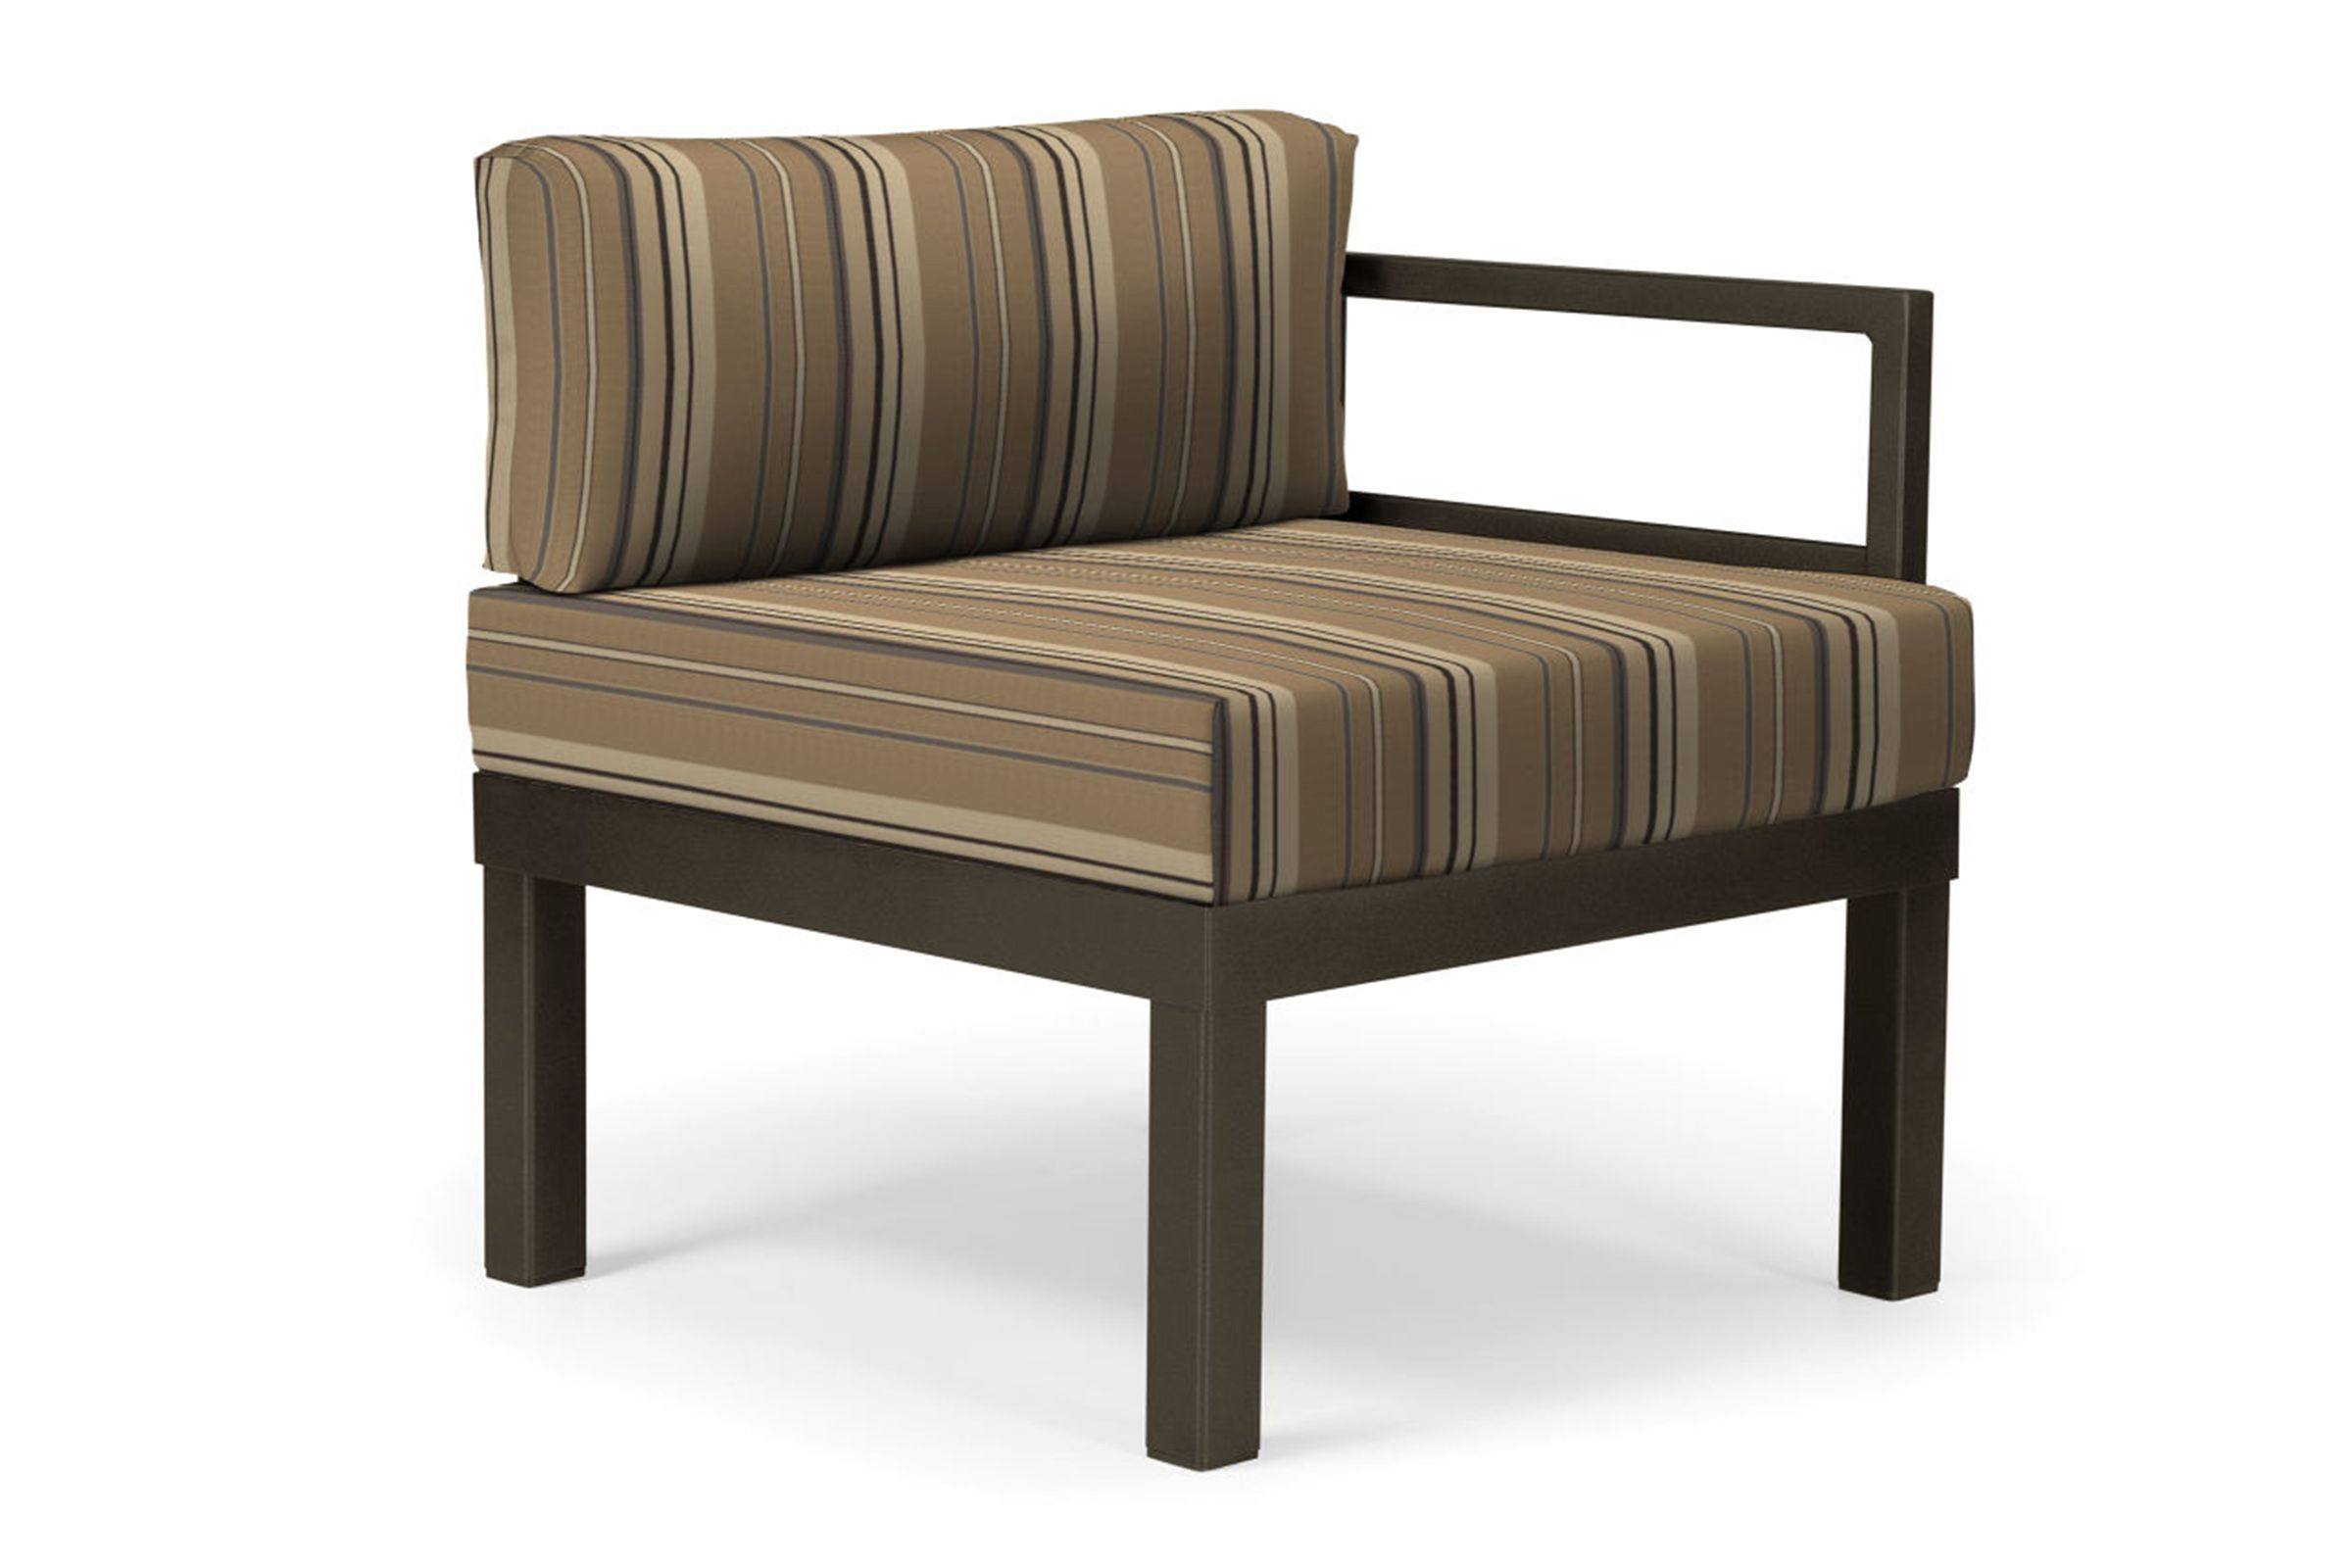 Ashbee Sectional Cushion Left/right Arm Chair 1a5 Pertaining To Well Known Beachwood Arm Chairs (View 18 of 20)